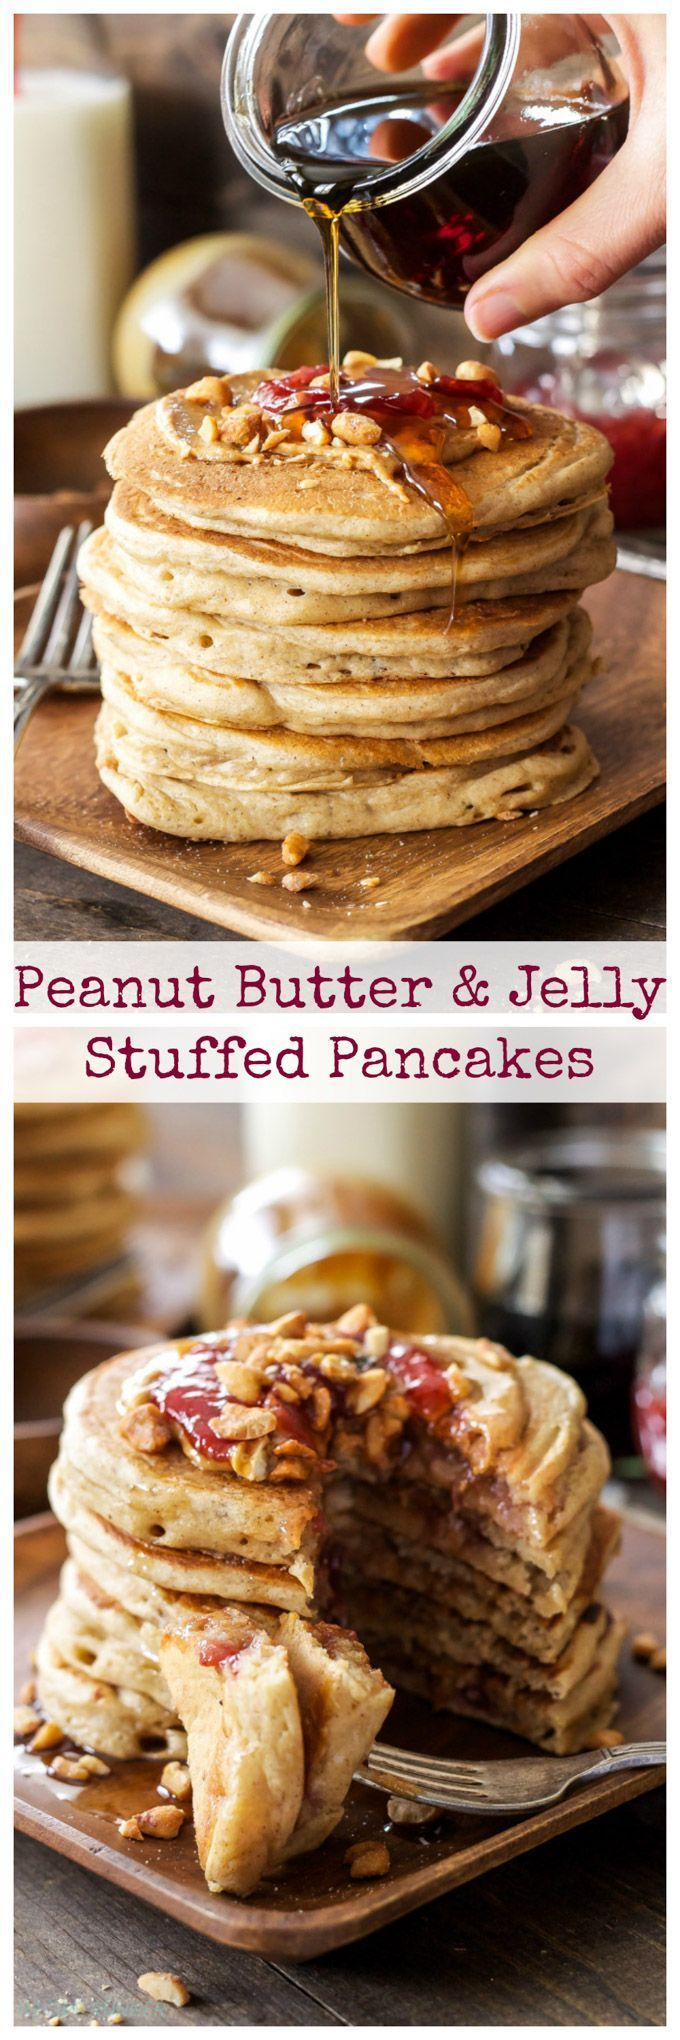 Peanut Butter & Jelly Stuffed Pancakes | Whole wheat pancakes stuffed with peanut butter and jelly, the perfect weekend breakfast!